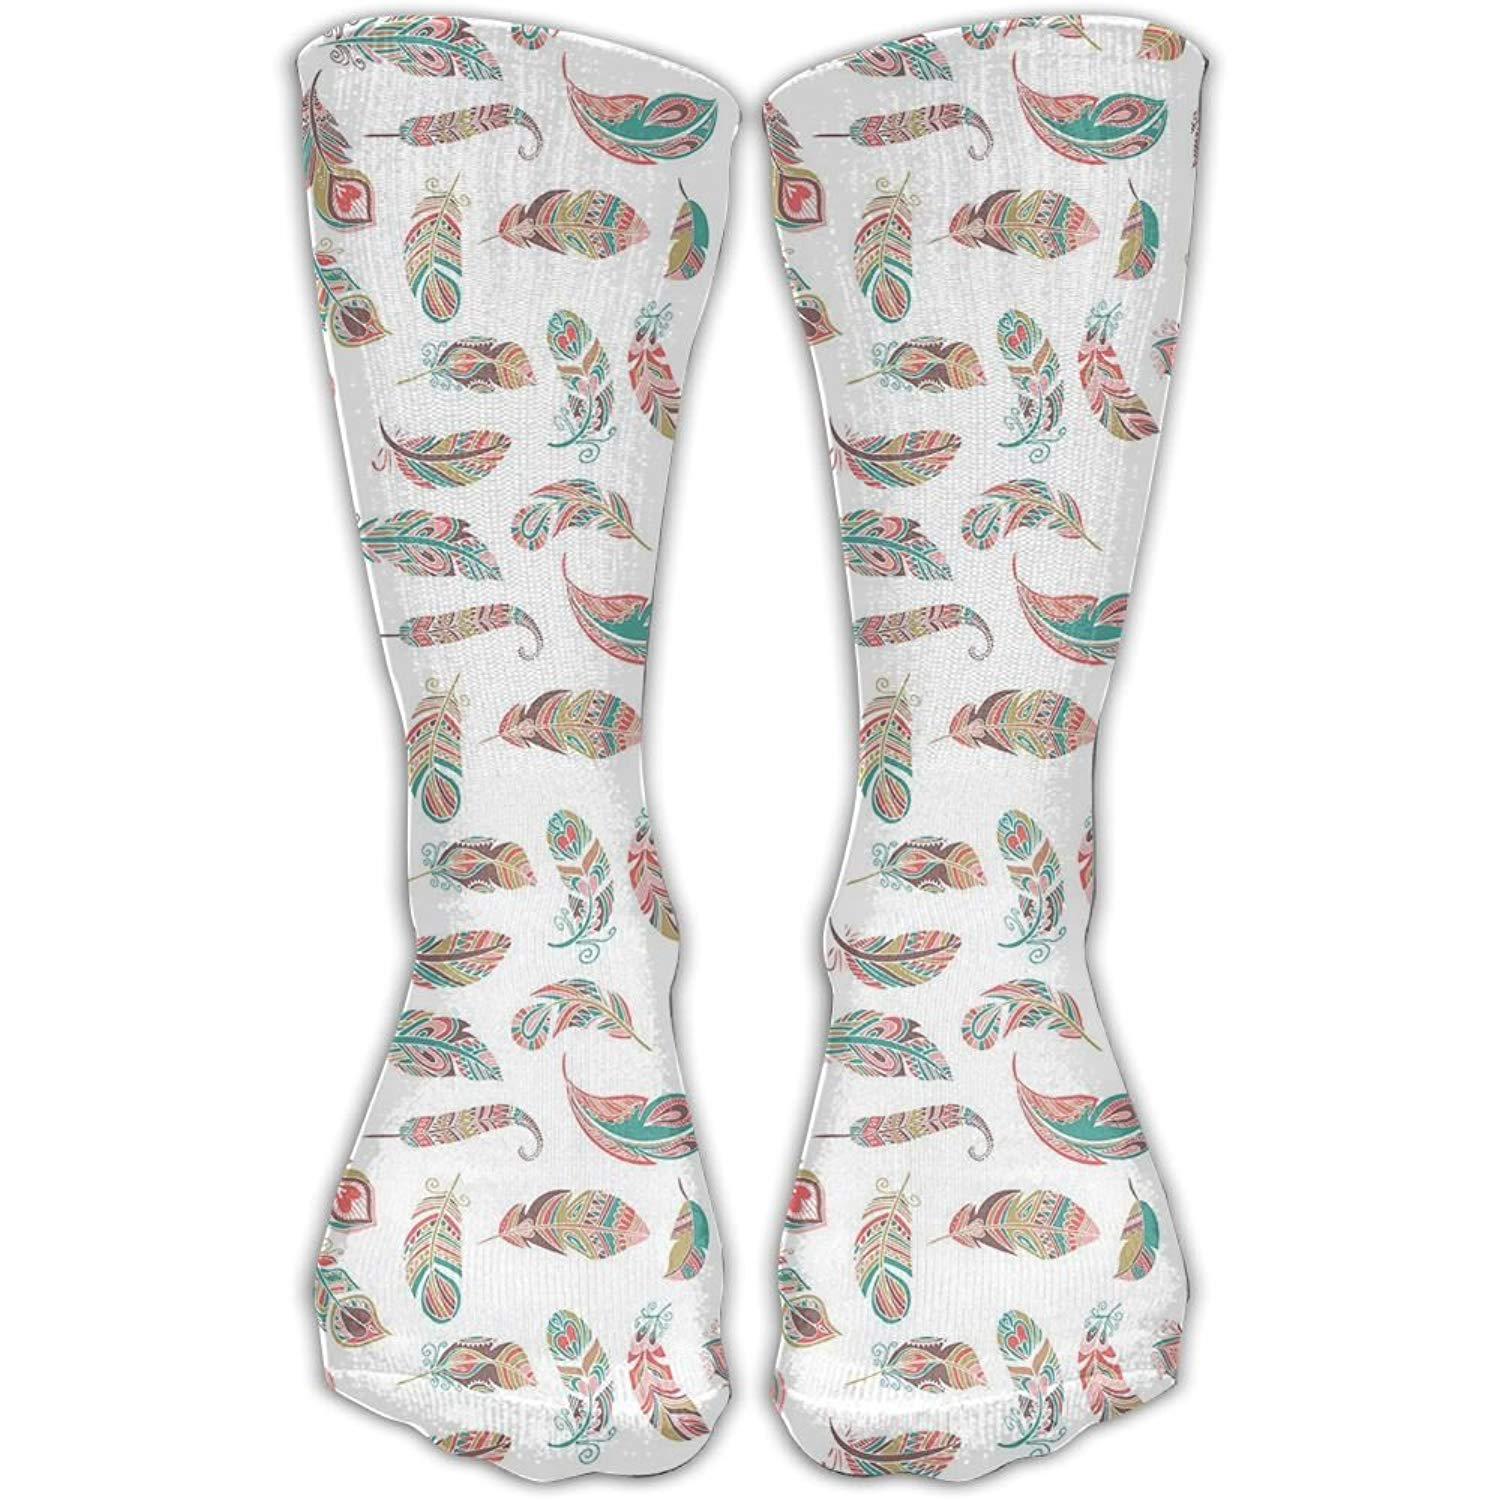 56d4cf70f96 Get Quotations · Too Suffering Ethnic Feathers With Colorful Style Currents  Women s Over Knee High Socks Bulldog Full Stockings